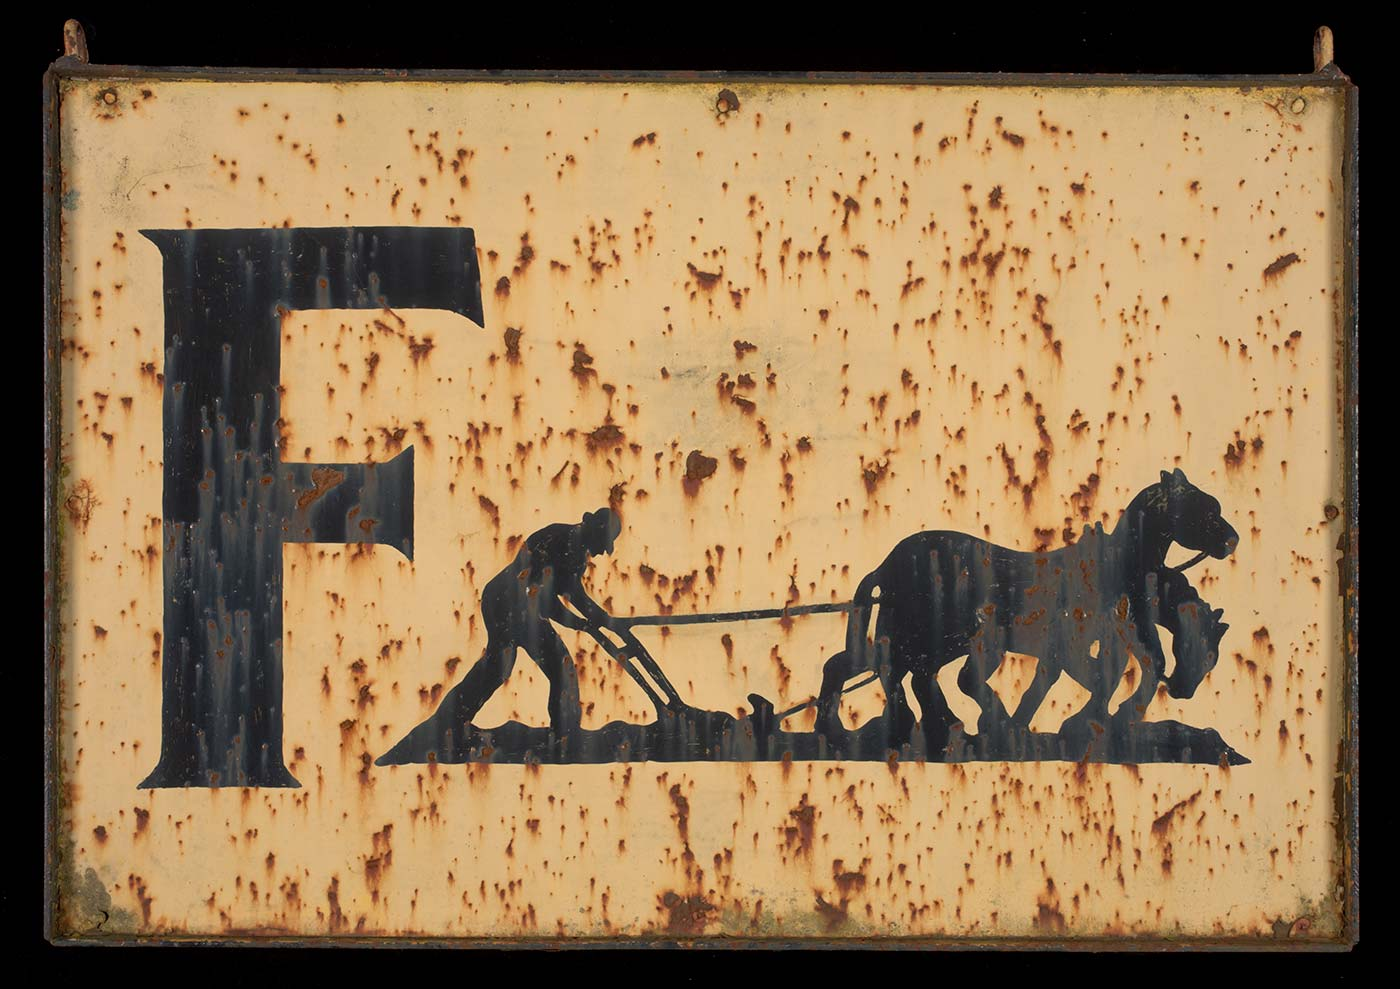 A colour photograph of an old metal sign which appears to be rusting through. On a cream background, the sign begins with a large black capital F followed by a black painted outline of a man operating a horse-drawn plough and two horses. - click to view larger image